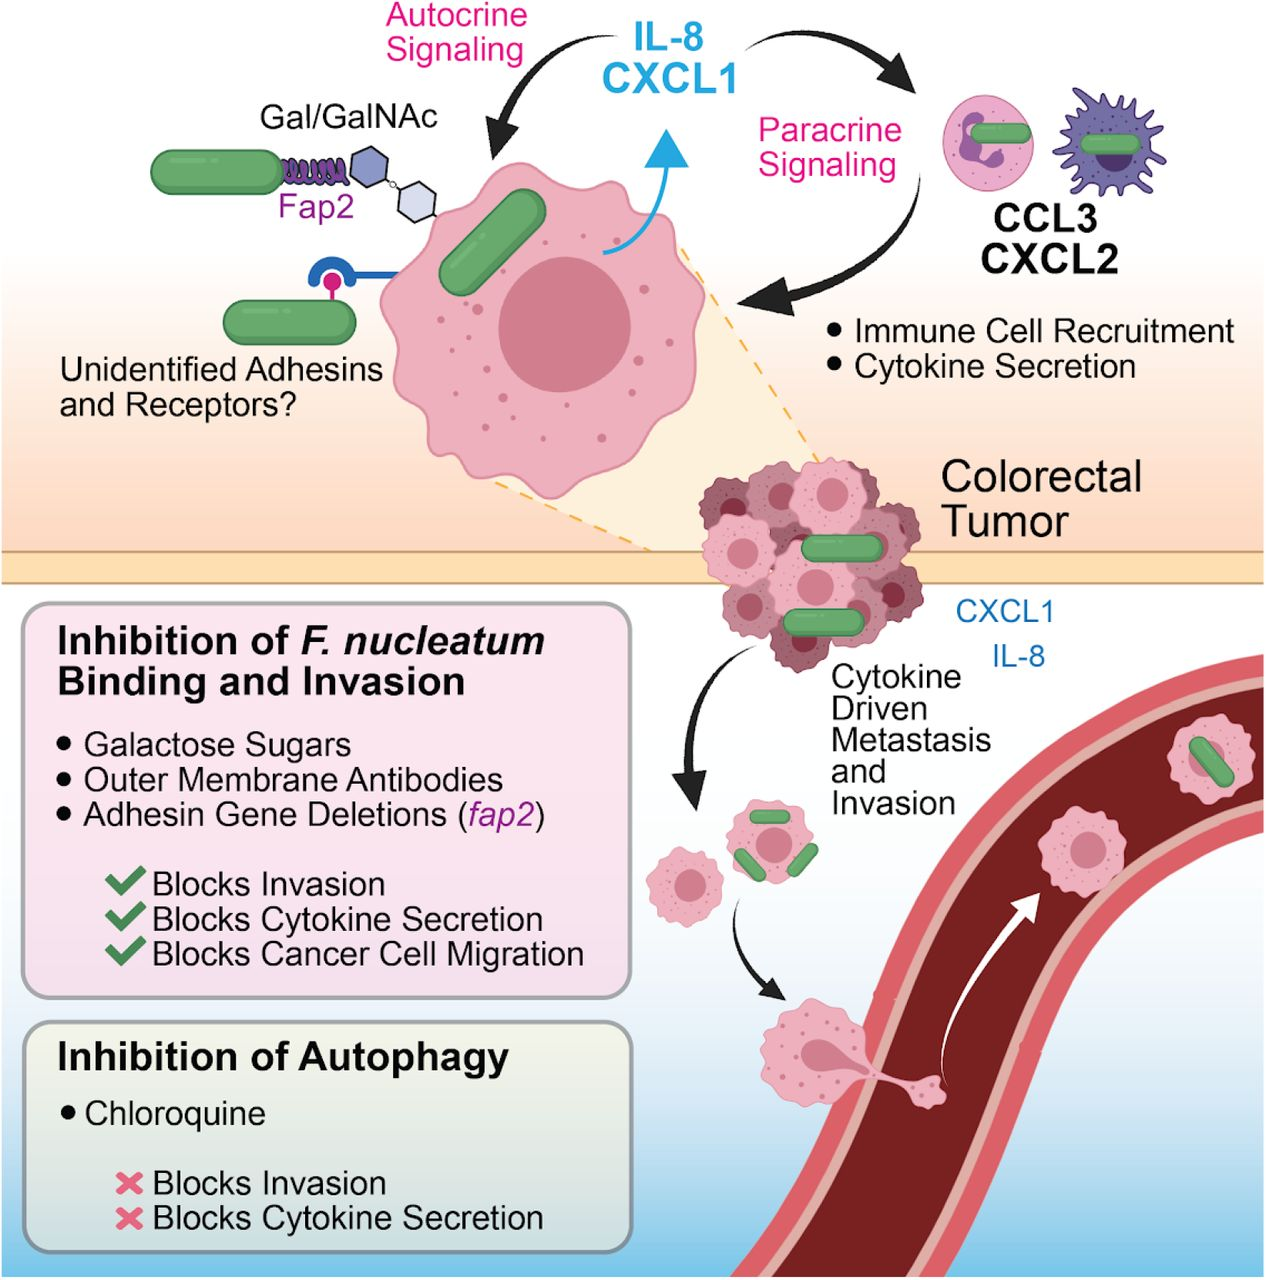 A model of F. <t>nucleatum</t> induced metastasis through cytokine signaling. We show that F. nucleatum induces IL-8 and CXCL1 secretion from CRC cells, and both cytokines have been characterized as key players in cancer metastasis and subsequent downstream cell seeding. As well as autocrine signaling back to cancer cells as a metastatic signal, HCT116 derived cytokines can participate in paracrine signaling to recruit neighboring immune cells, which further secrete their own cytokine signatures that alter the tumor microenvironment through metastatic, inflammatory, and immune cell programming.